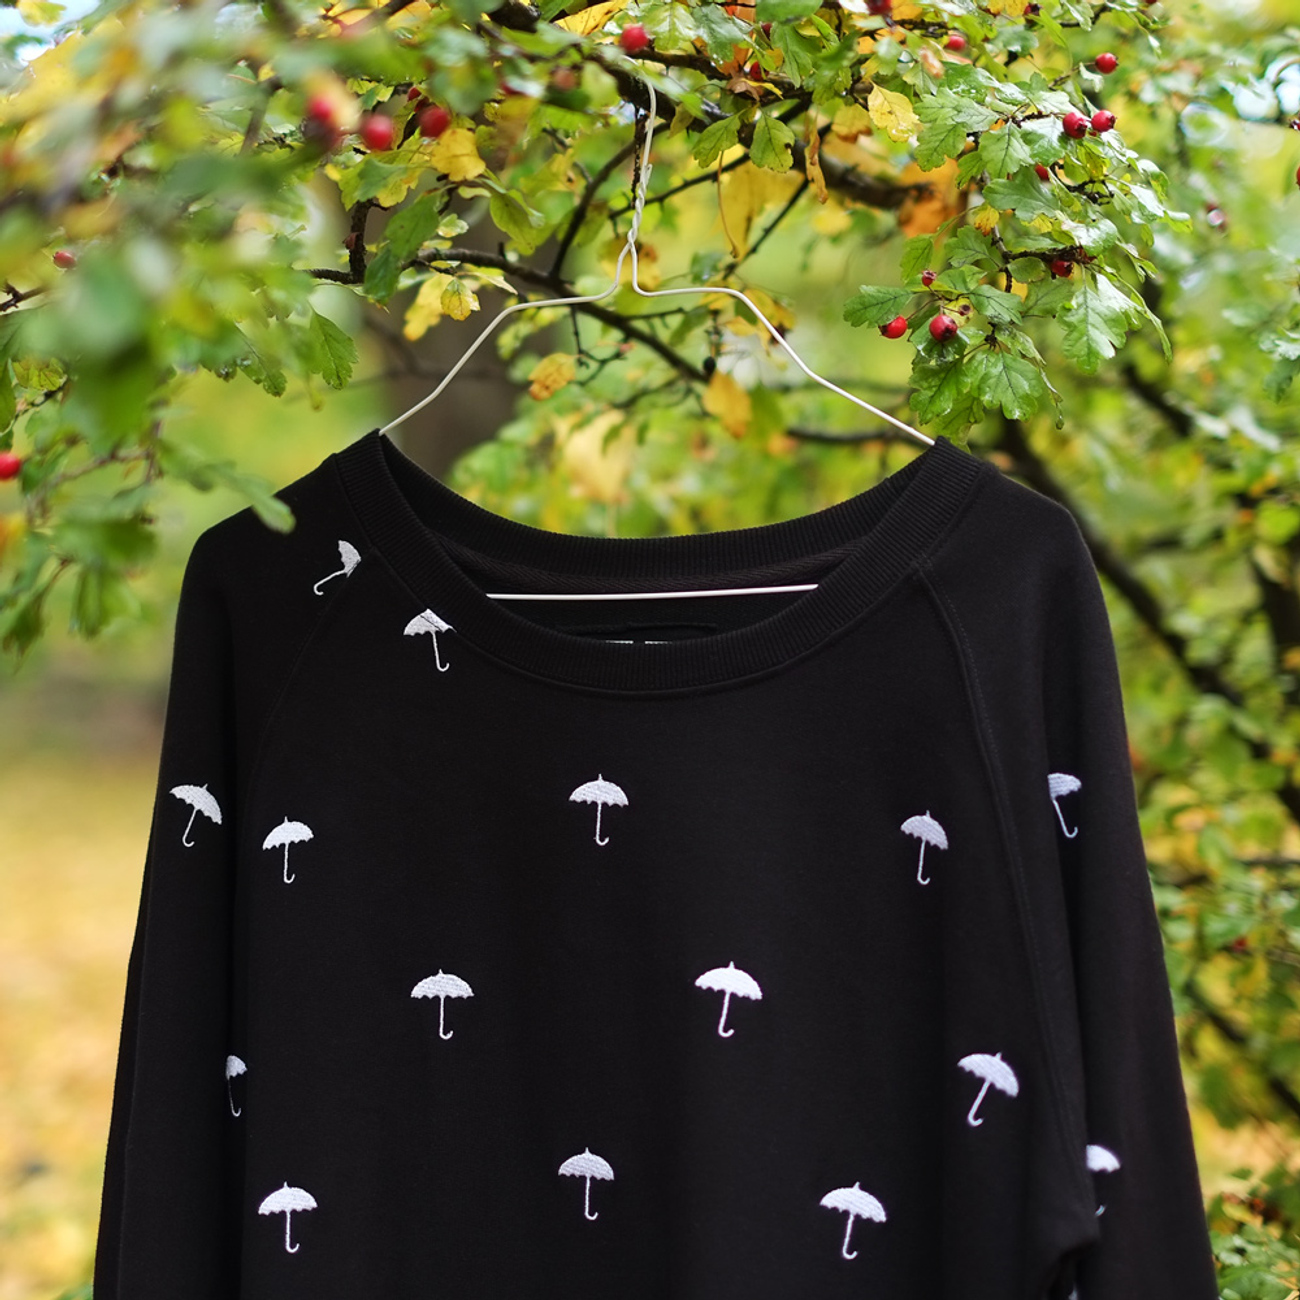 Malmoe Sweatshirt Umbrellas Embroidery